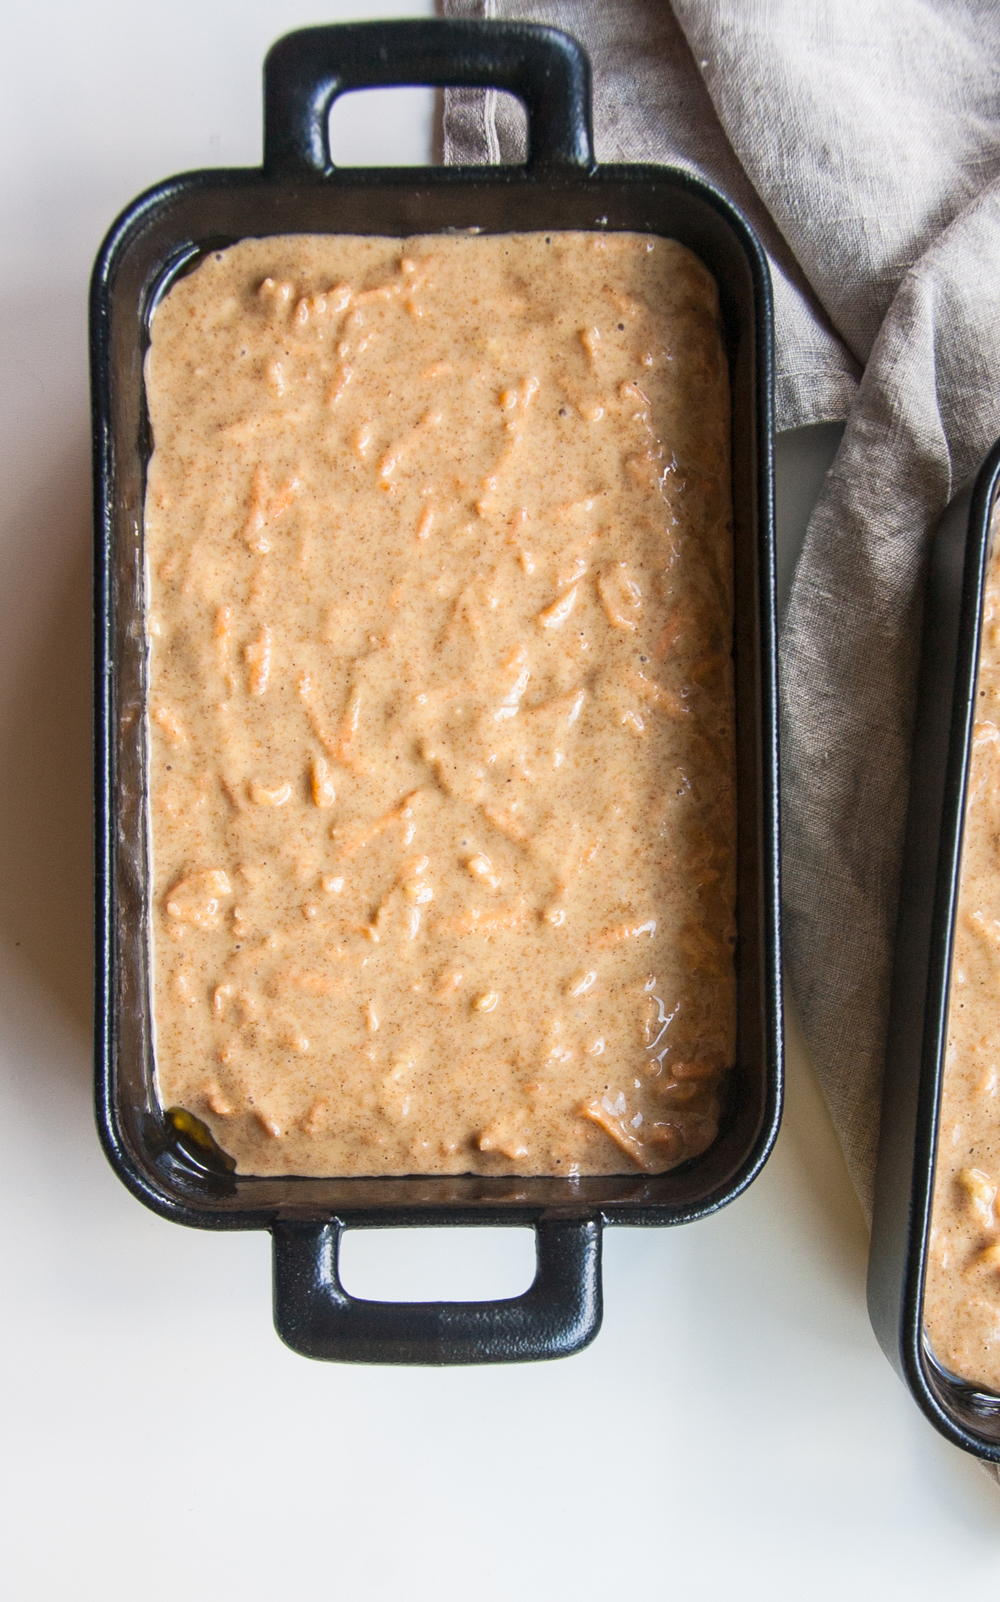 healthy carrot cake - an everyday alternative to traditional carrot cake